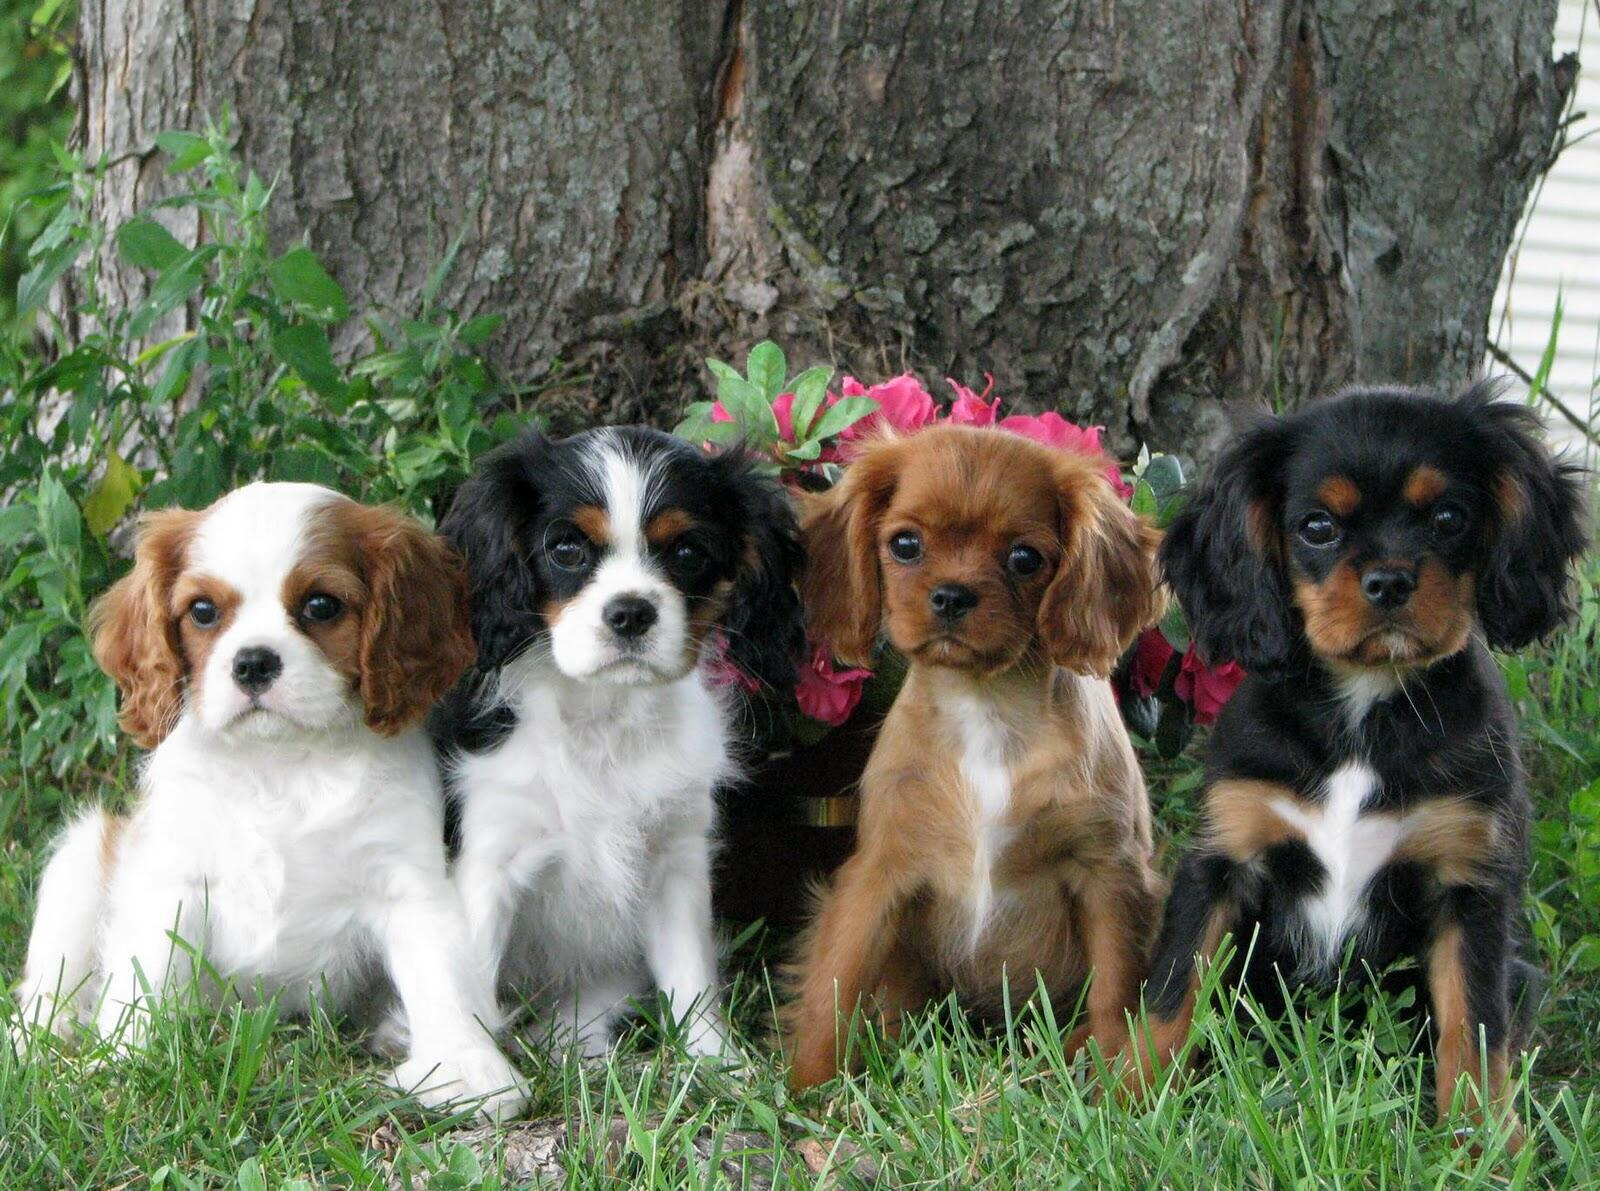 A line of spaniel pups sitting beneath a tree. http://t.co/JOXq6Imh3M